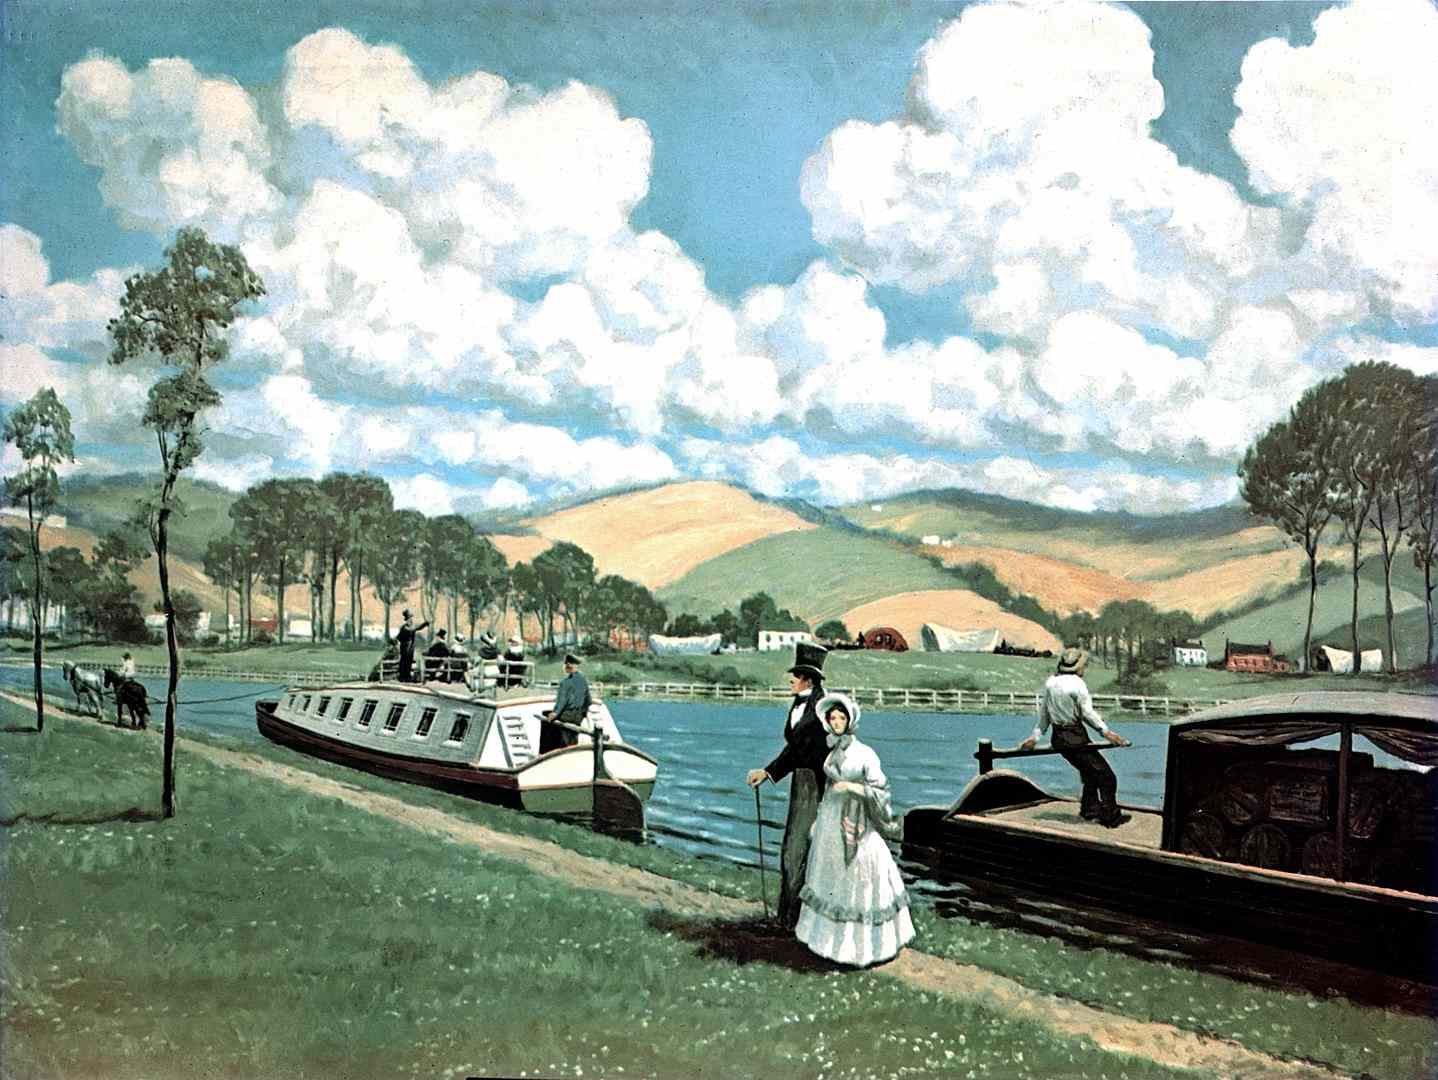 Color painting of the Eerie Canal in 1825 with travelers on boats and covered wagons in the distance.